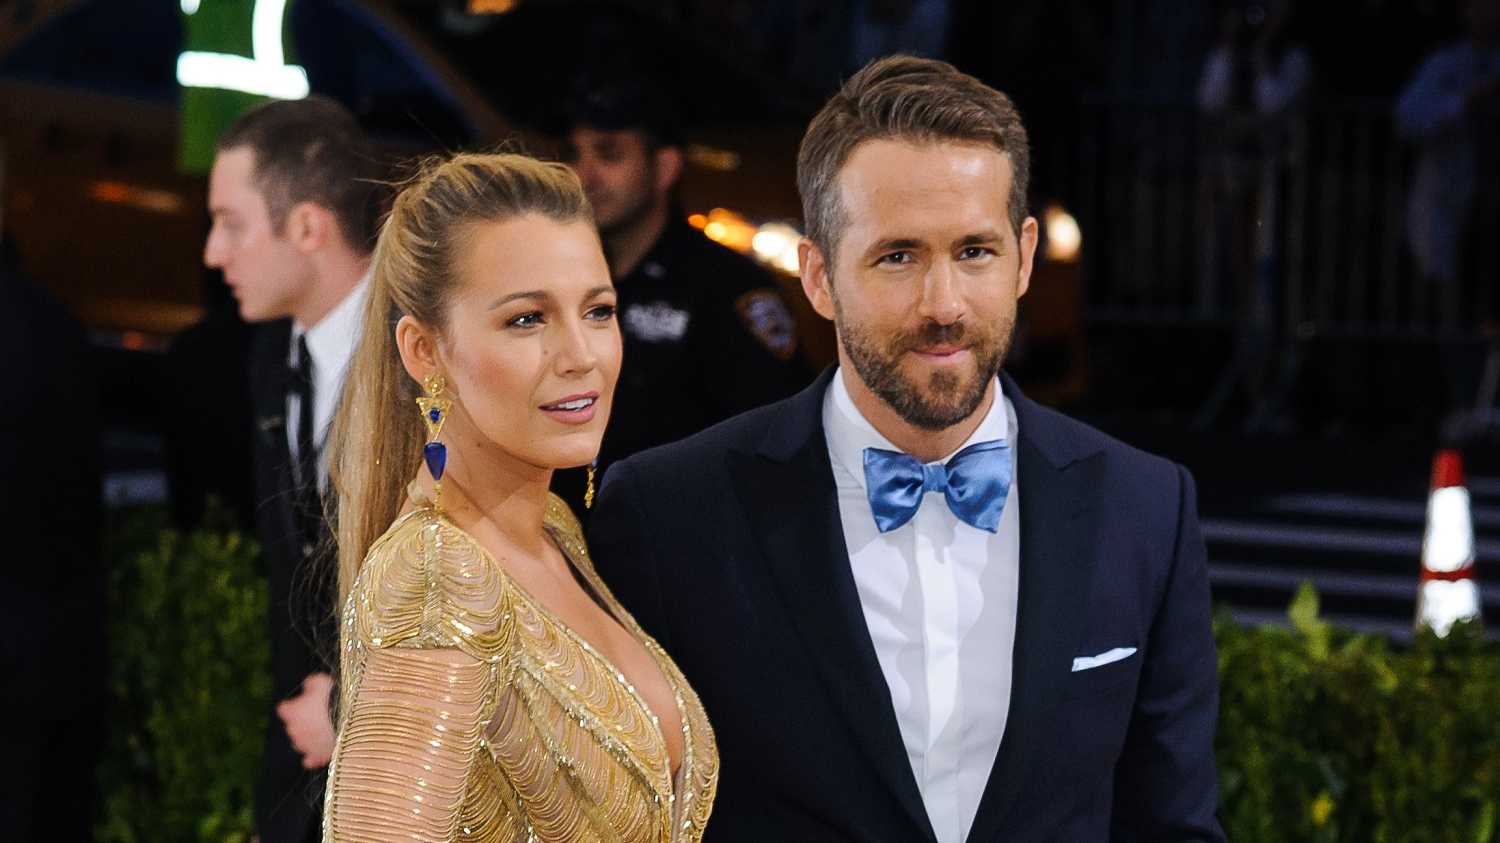 ​Ryan Reynolds Replies To Blake Lively After She Rinses His S**t Attempt At Baking